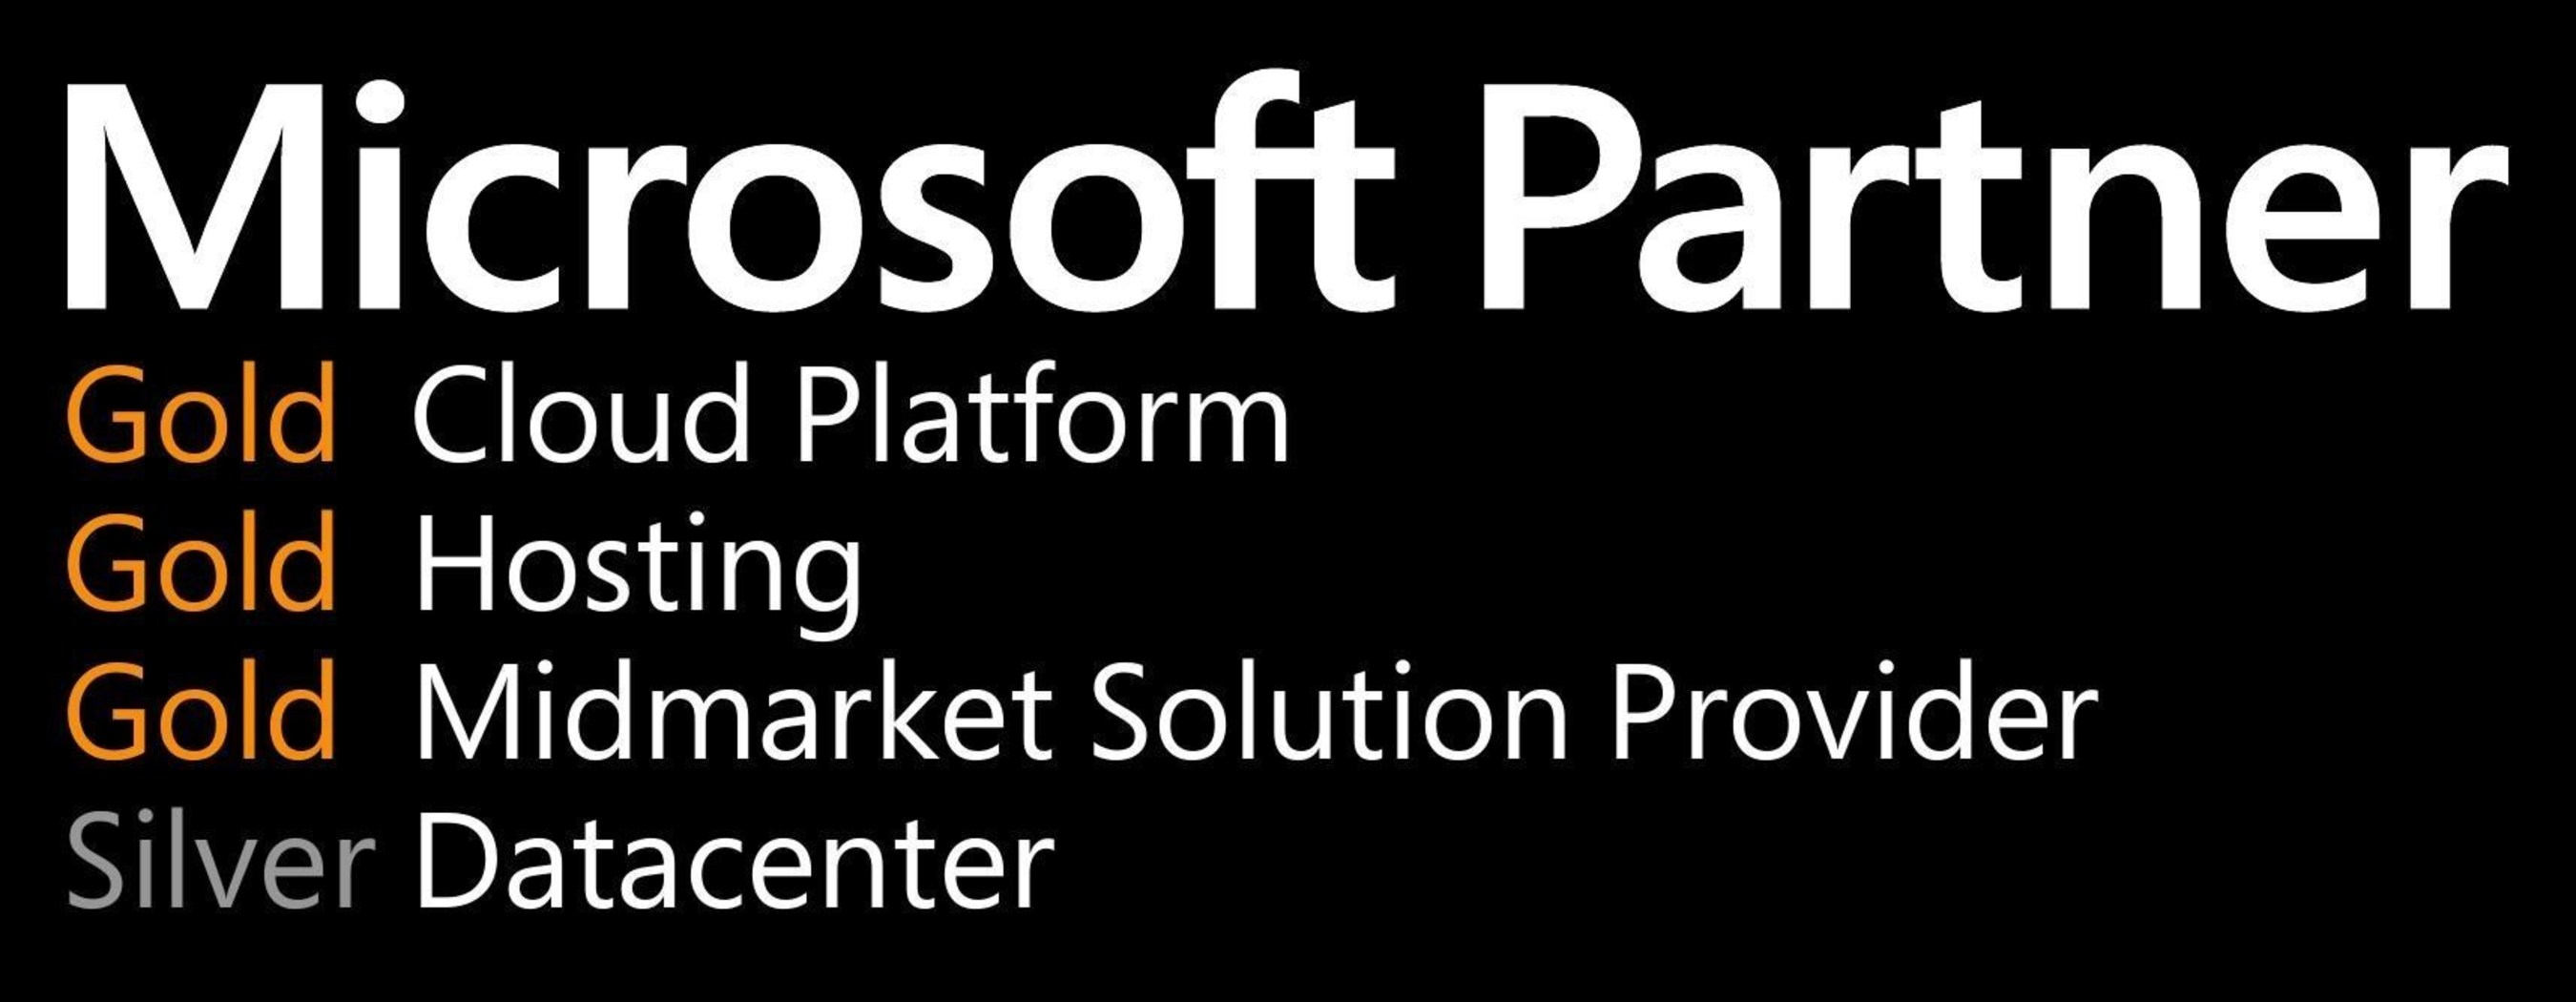 SaaSplaza Earns Gold Cloud Platform Microsoft Partner Competency